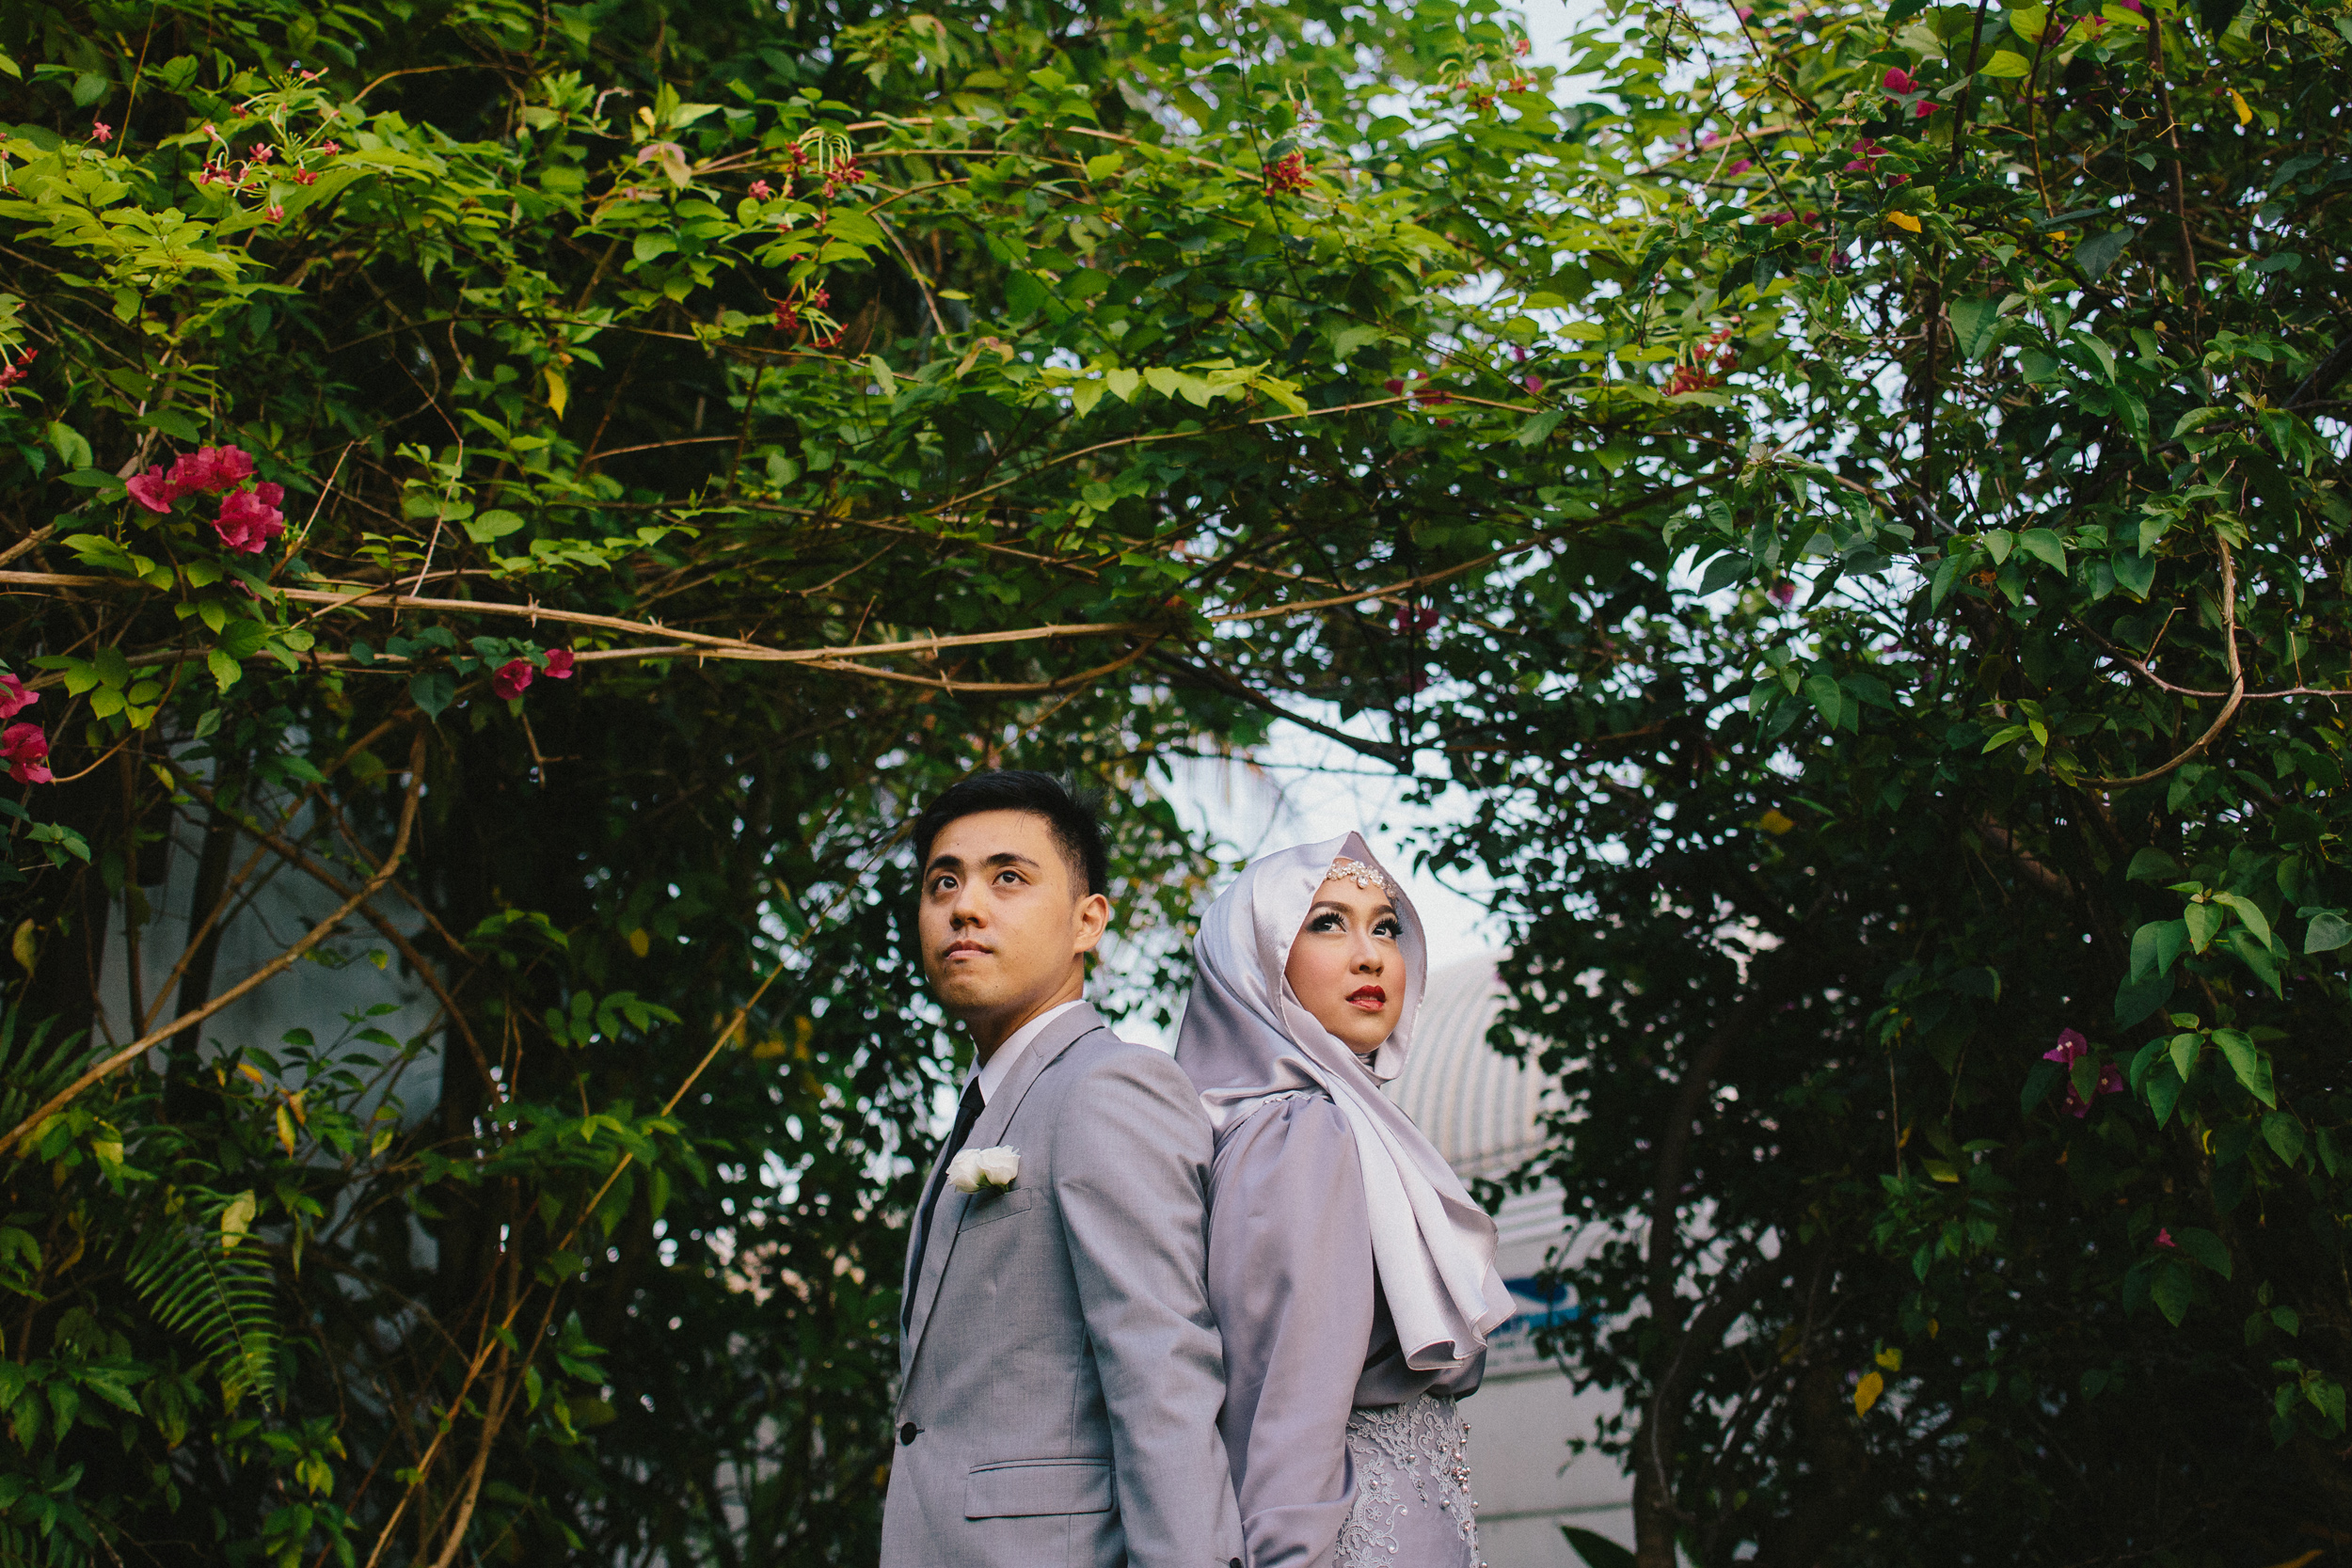 singapore-wedding-photographer-wemadethese-aisyah-helmi-61.jpg